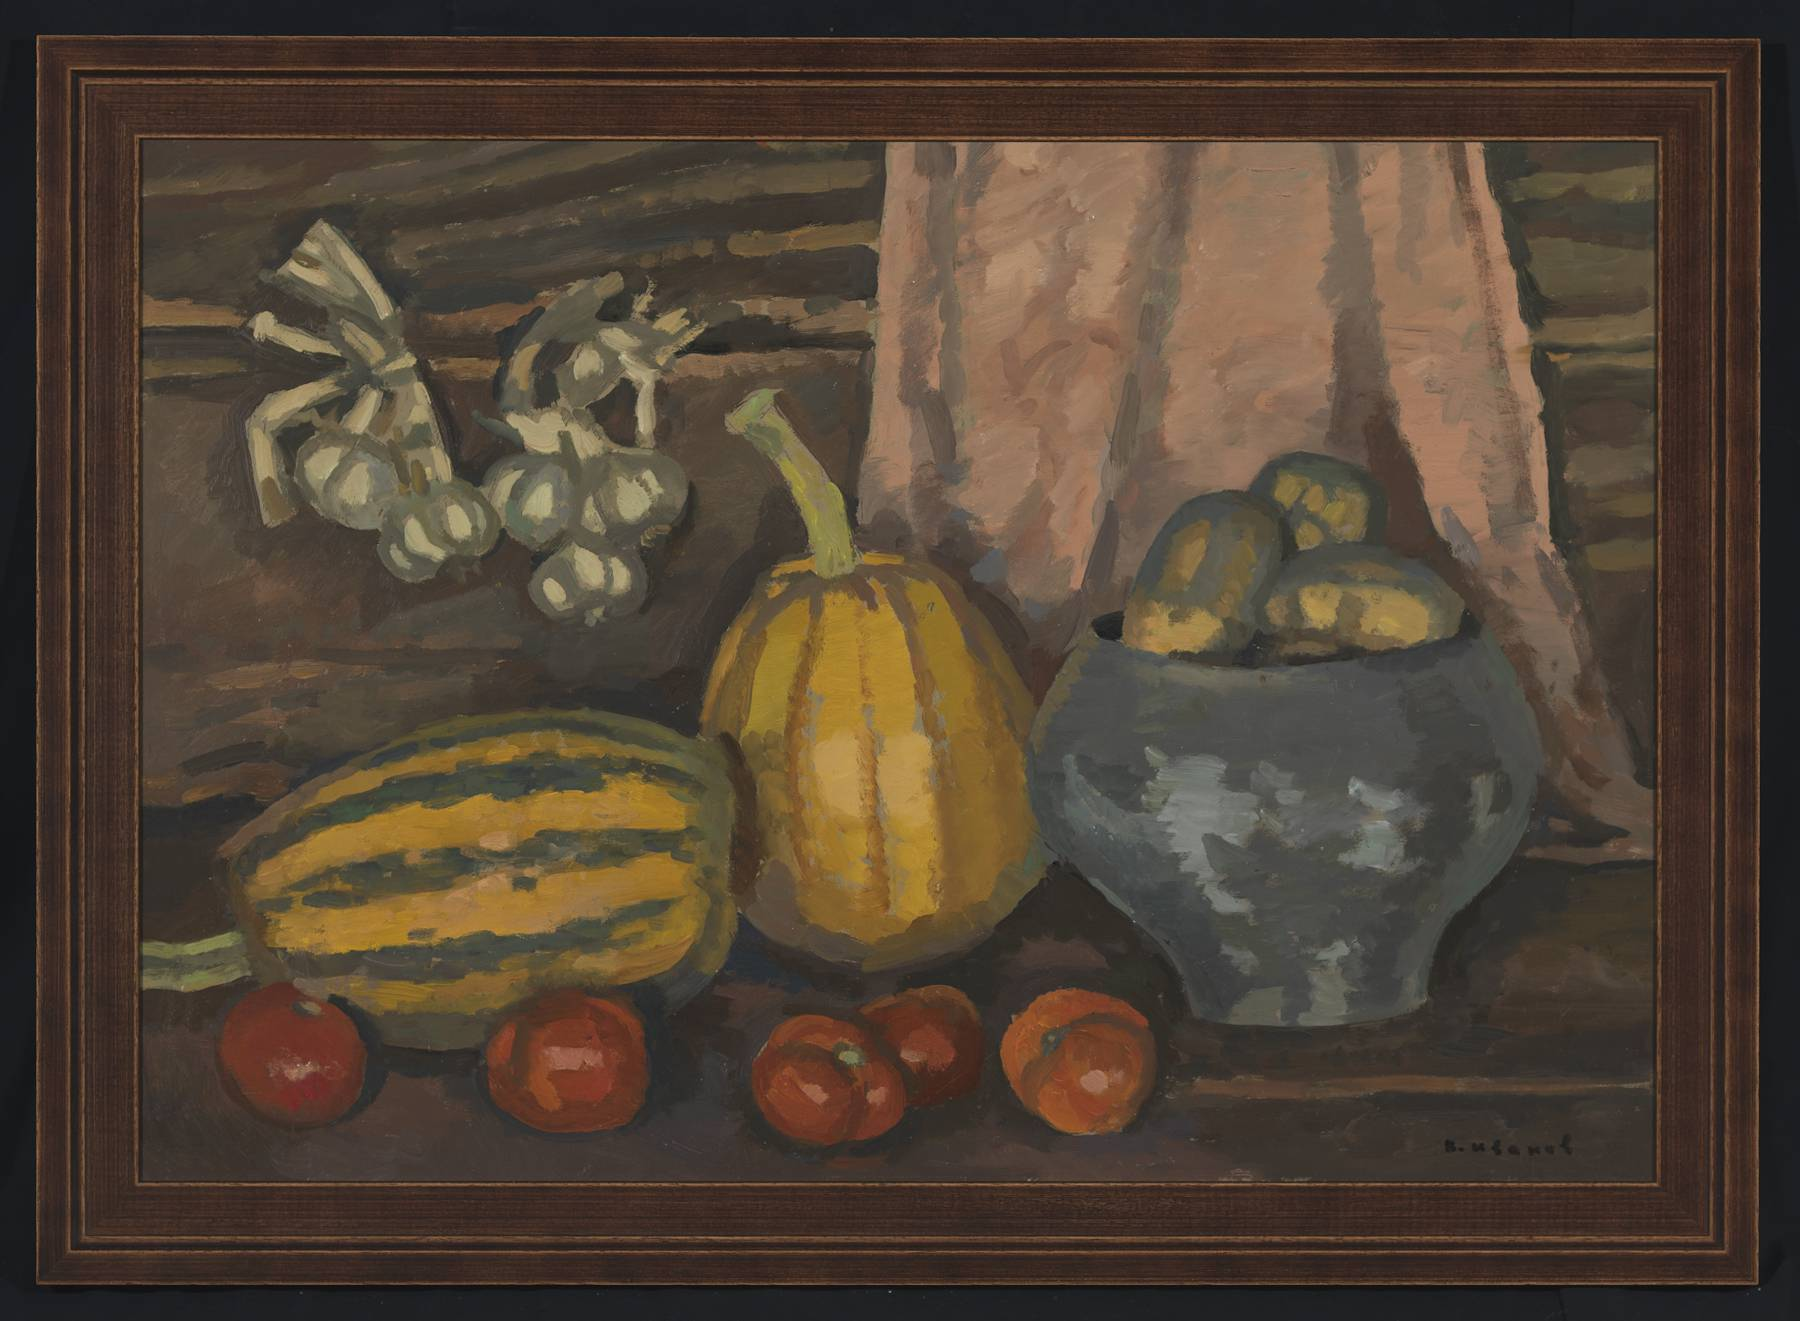 Still Life with Mellon and Tomatoes